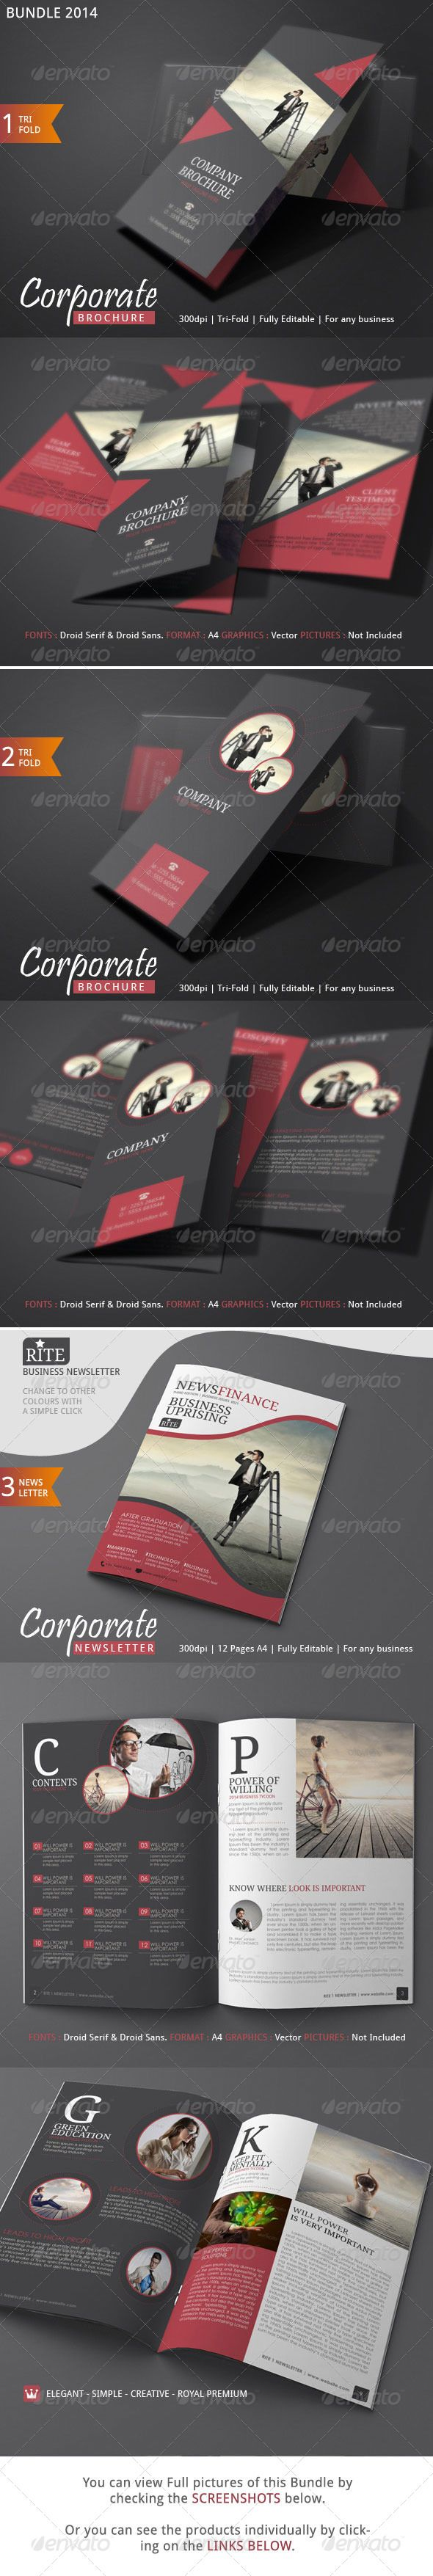 Rite Corporate Brochure Template to boost your profit of your business through a high end marketing strategy. Check out these templates which are very affordable. With some dollars you can get two great brochure design with a 12 pages newsletter. What more you need. It is fully editable. #brochure #newsletter